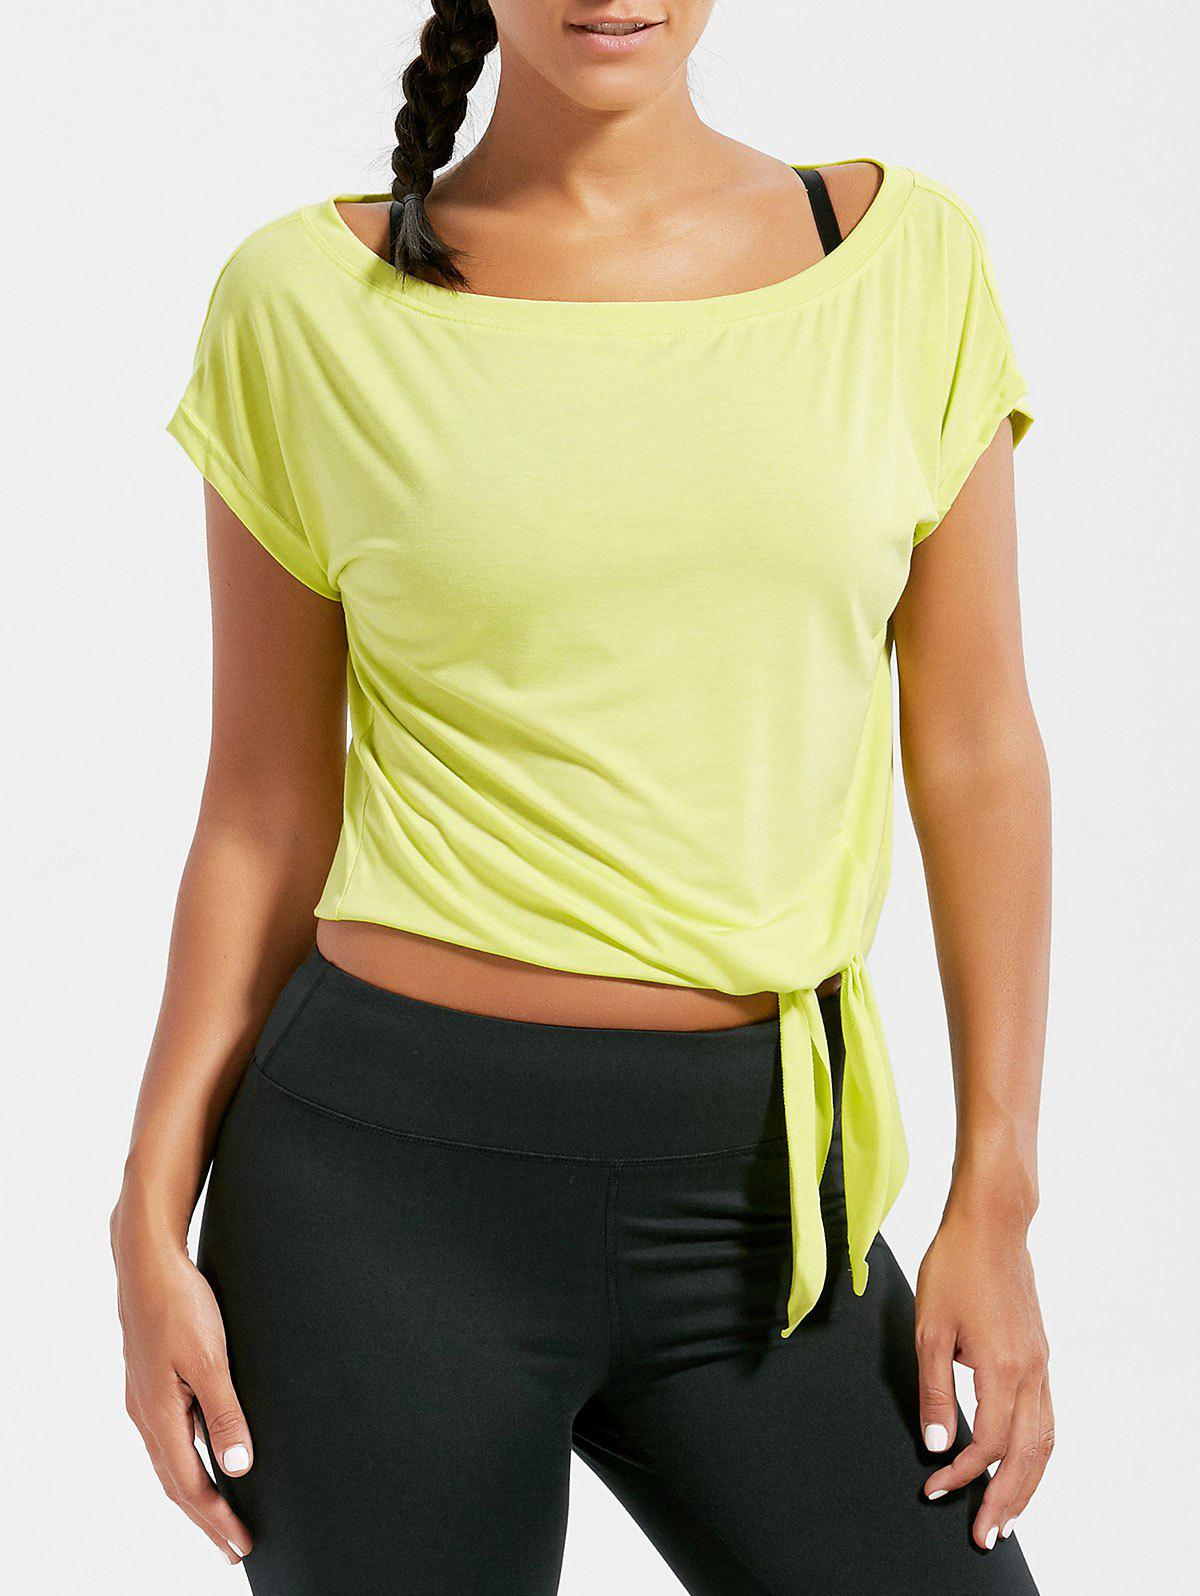 Active Cropped Front Tie T-shirt - BLUISH YELLOW S